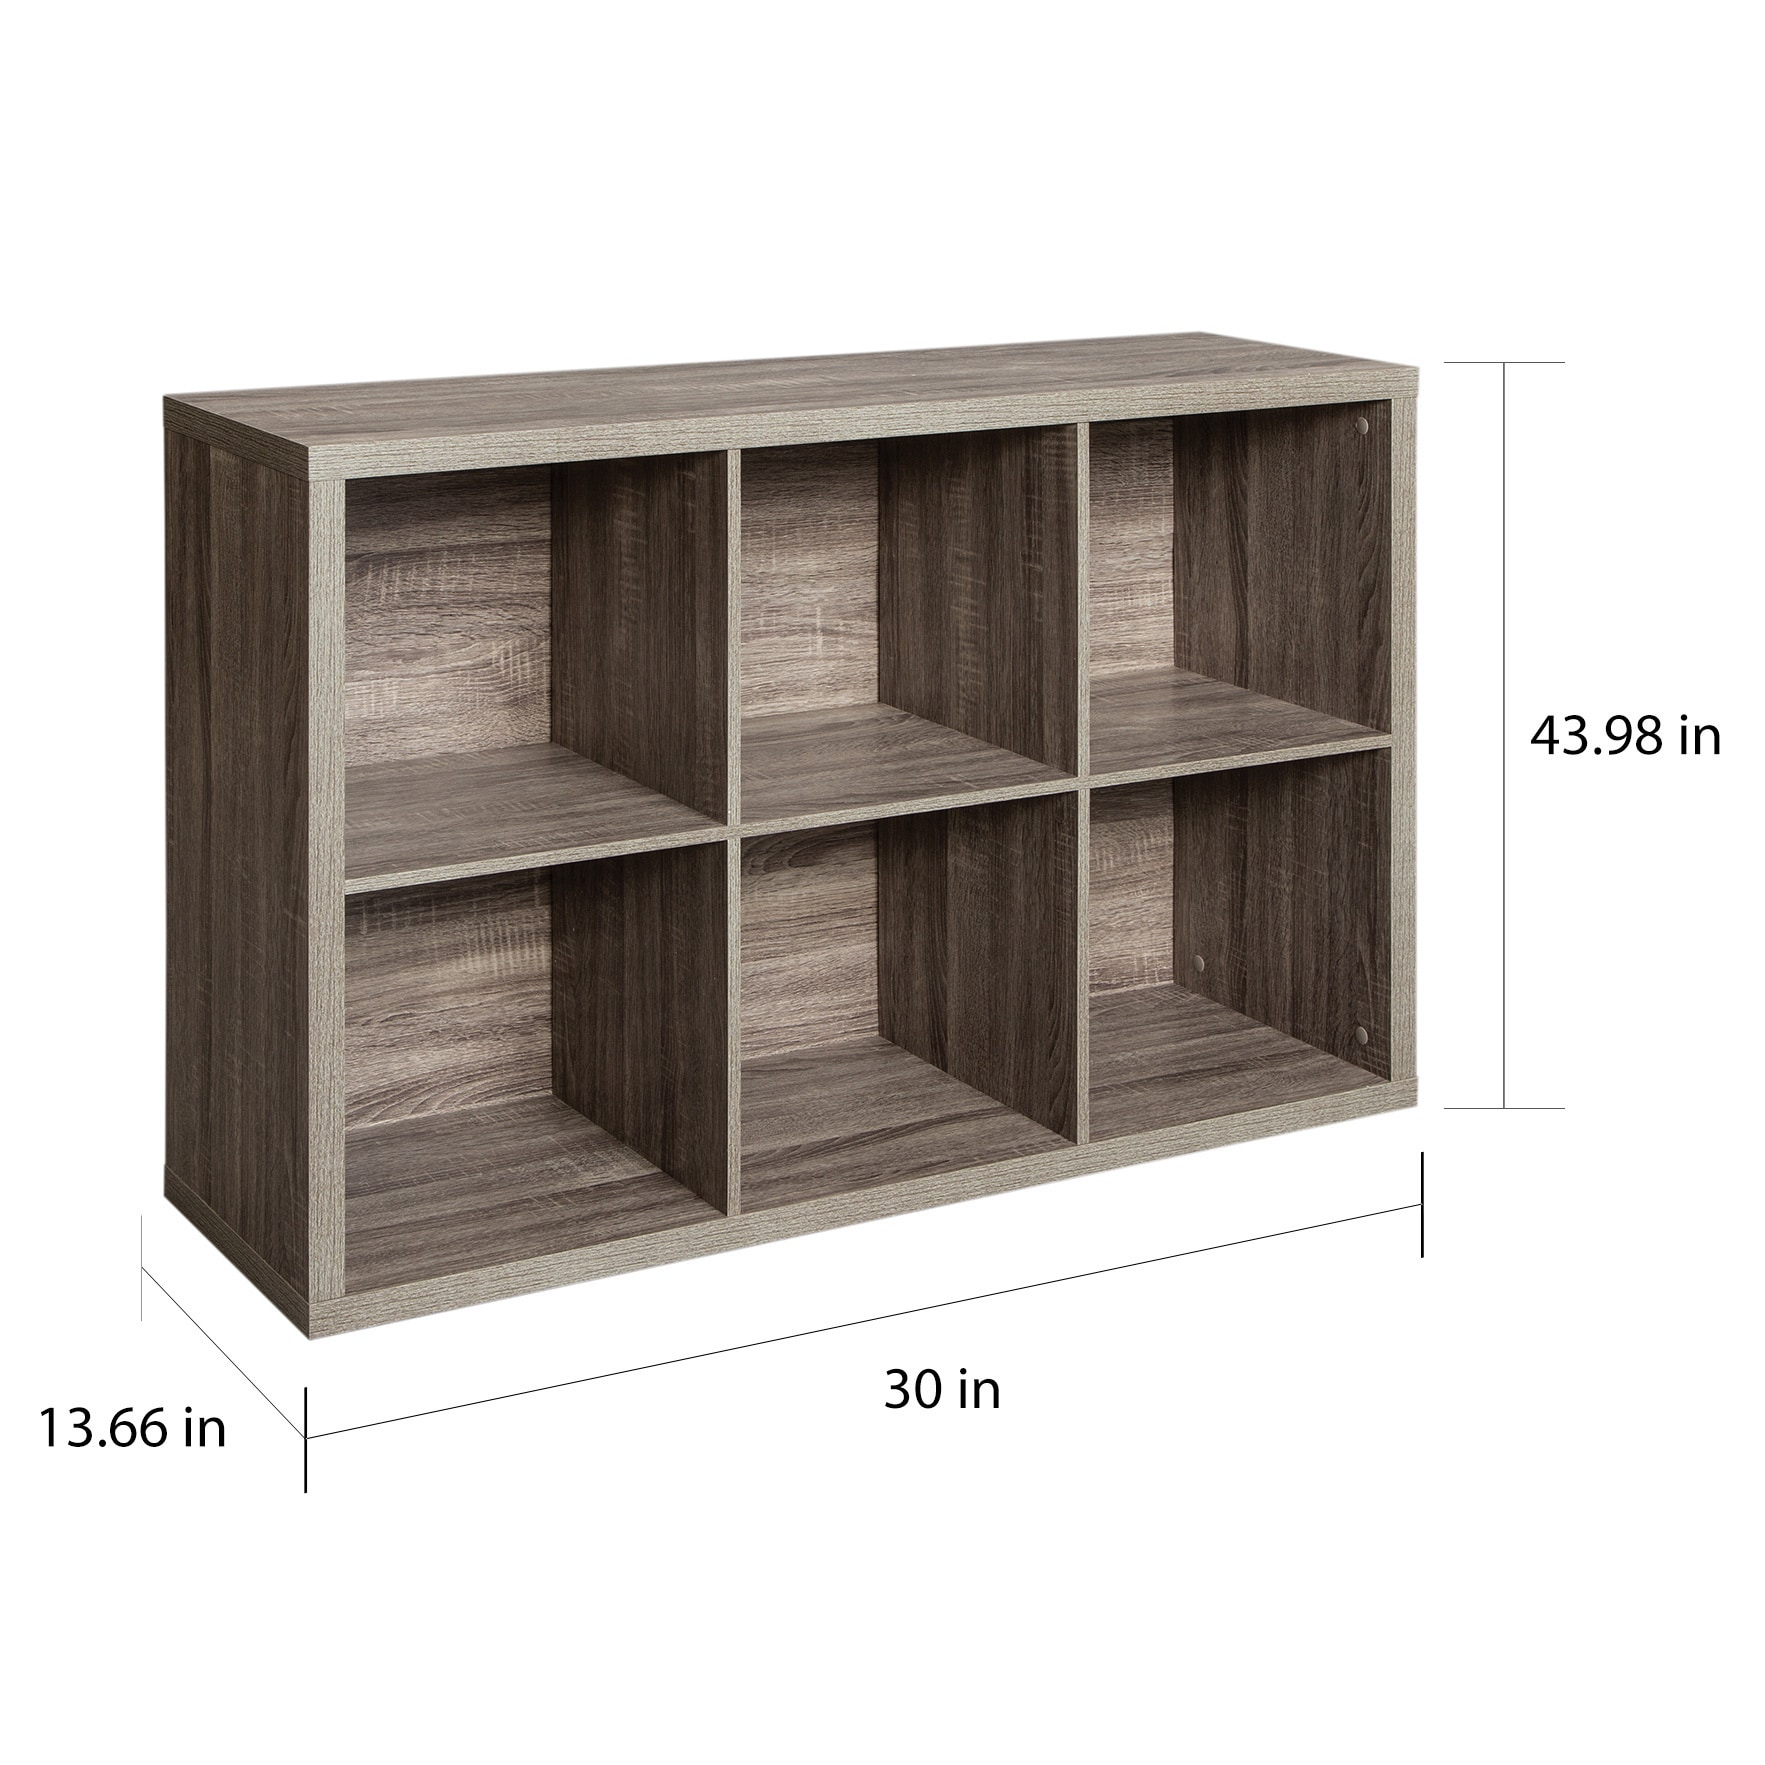 Beau Shop ClosetMaid Decorative Storage 6 Cube Organizer   Free Shipping Today    Overstock.com   16373950